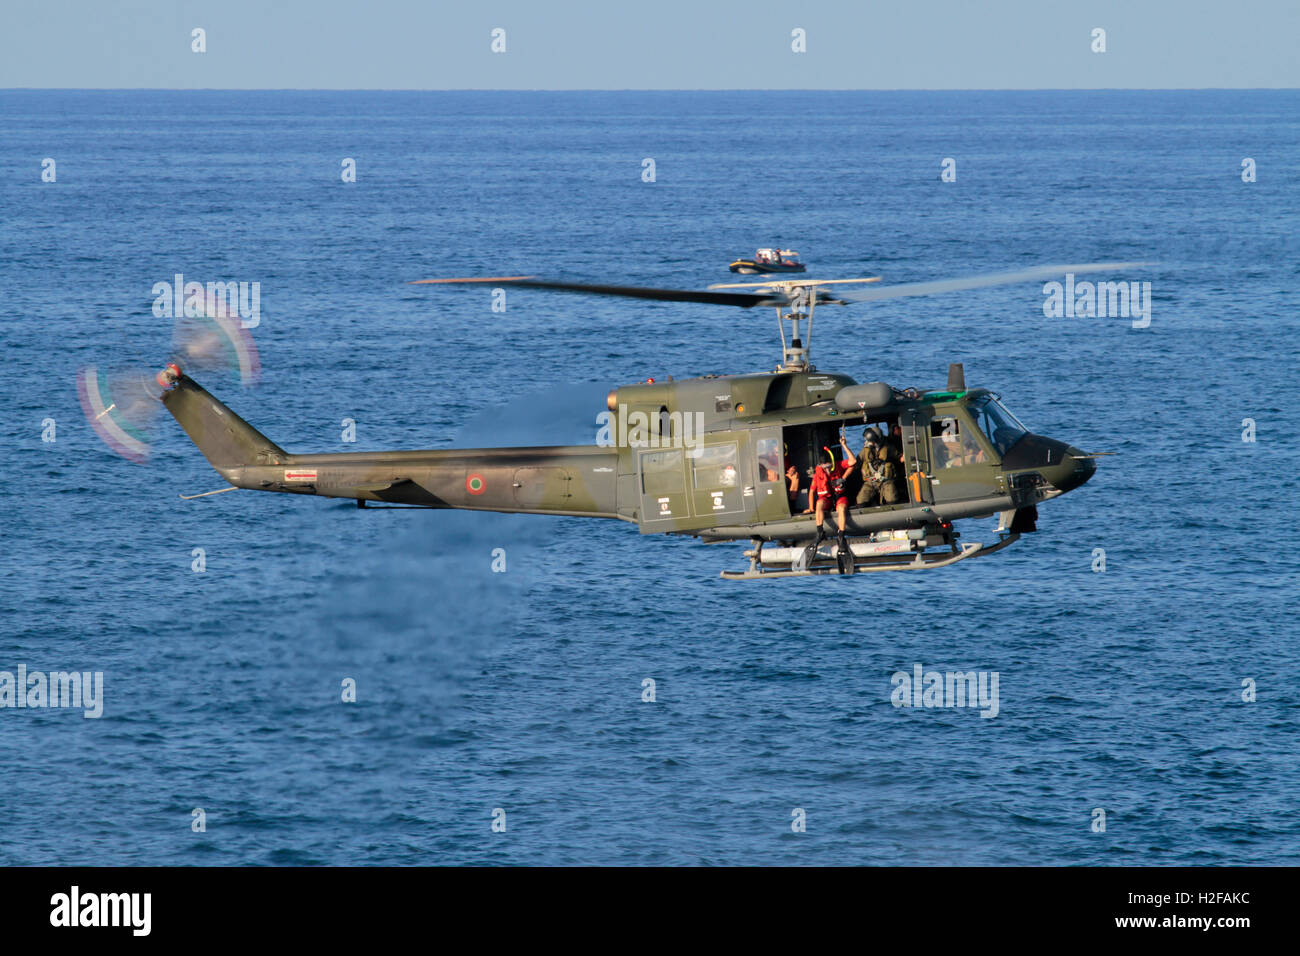 Diver preparing to jump from an Italian Air Force or Aeronautica Militare Italiana Agusta-Bell AB212 helicopter - Stock Image